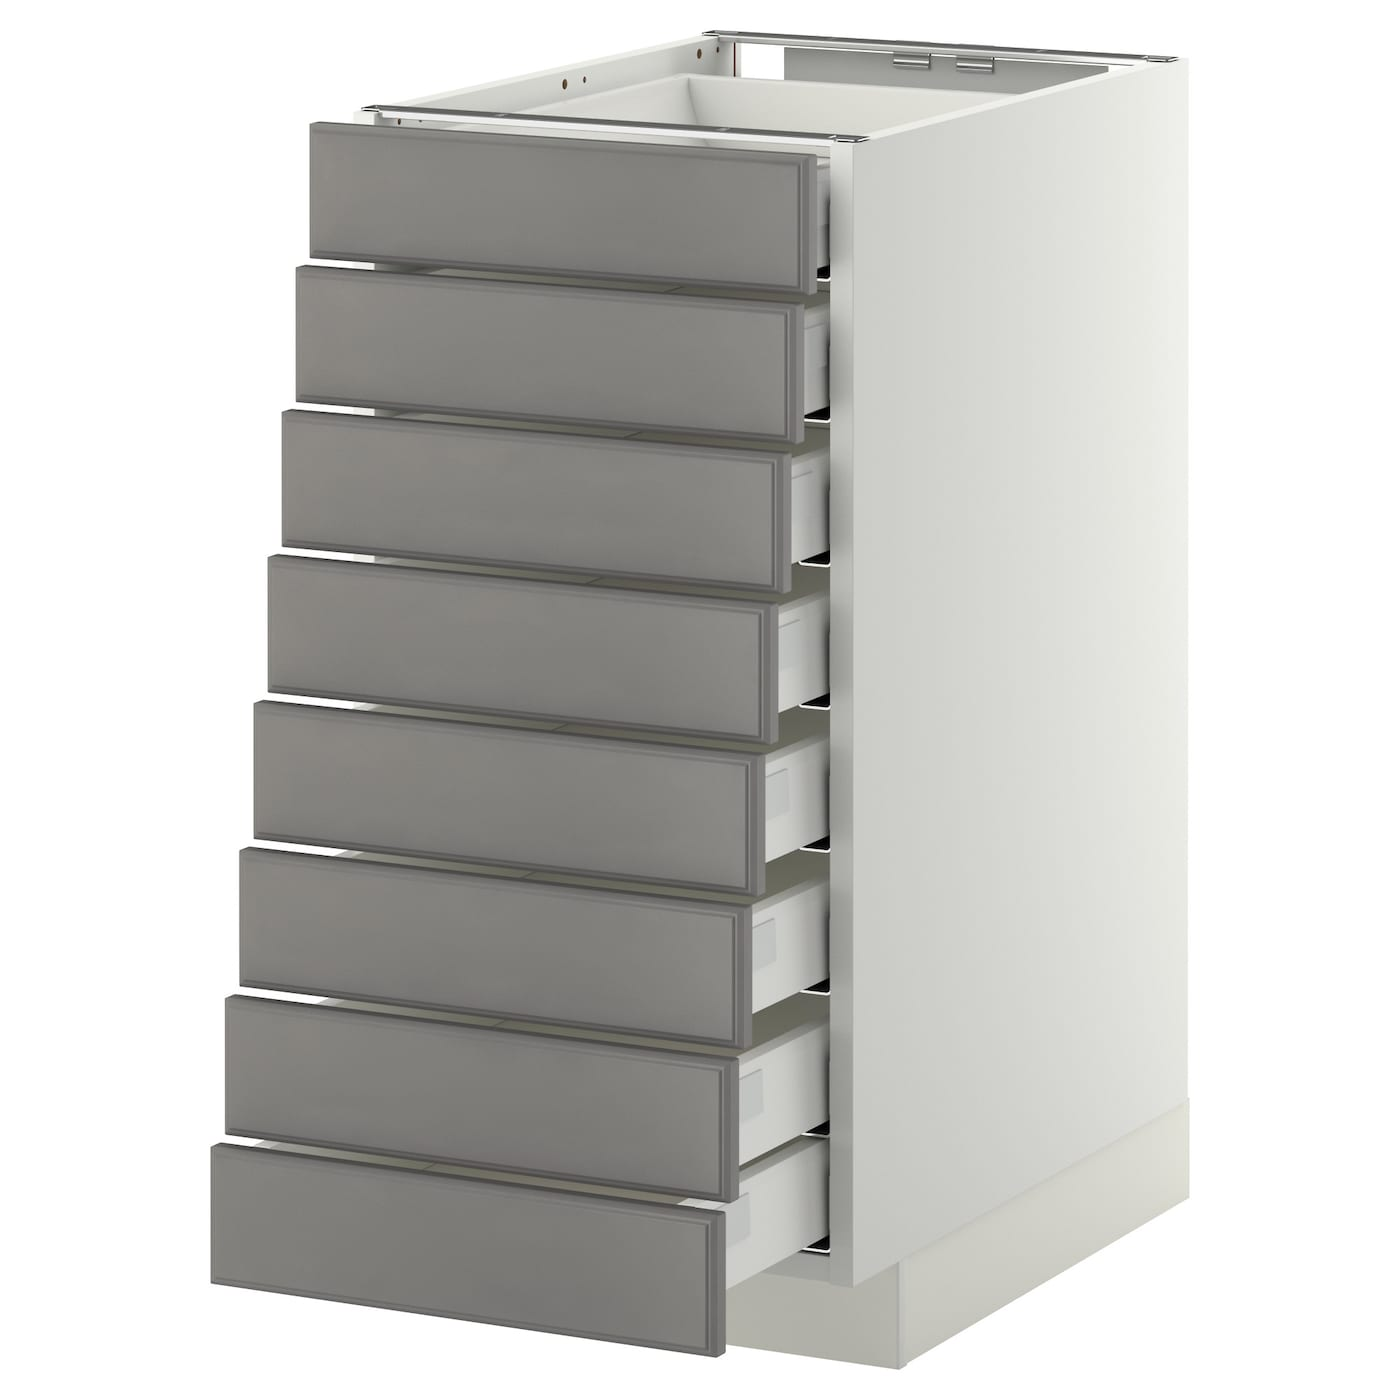 Metod Maximera Base Cabinet 8 Fronts 8 Low Drawers White Bodbyn Grey 40x60 Cm Ikea